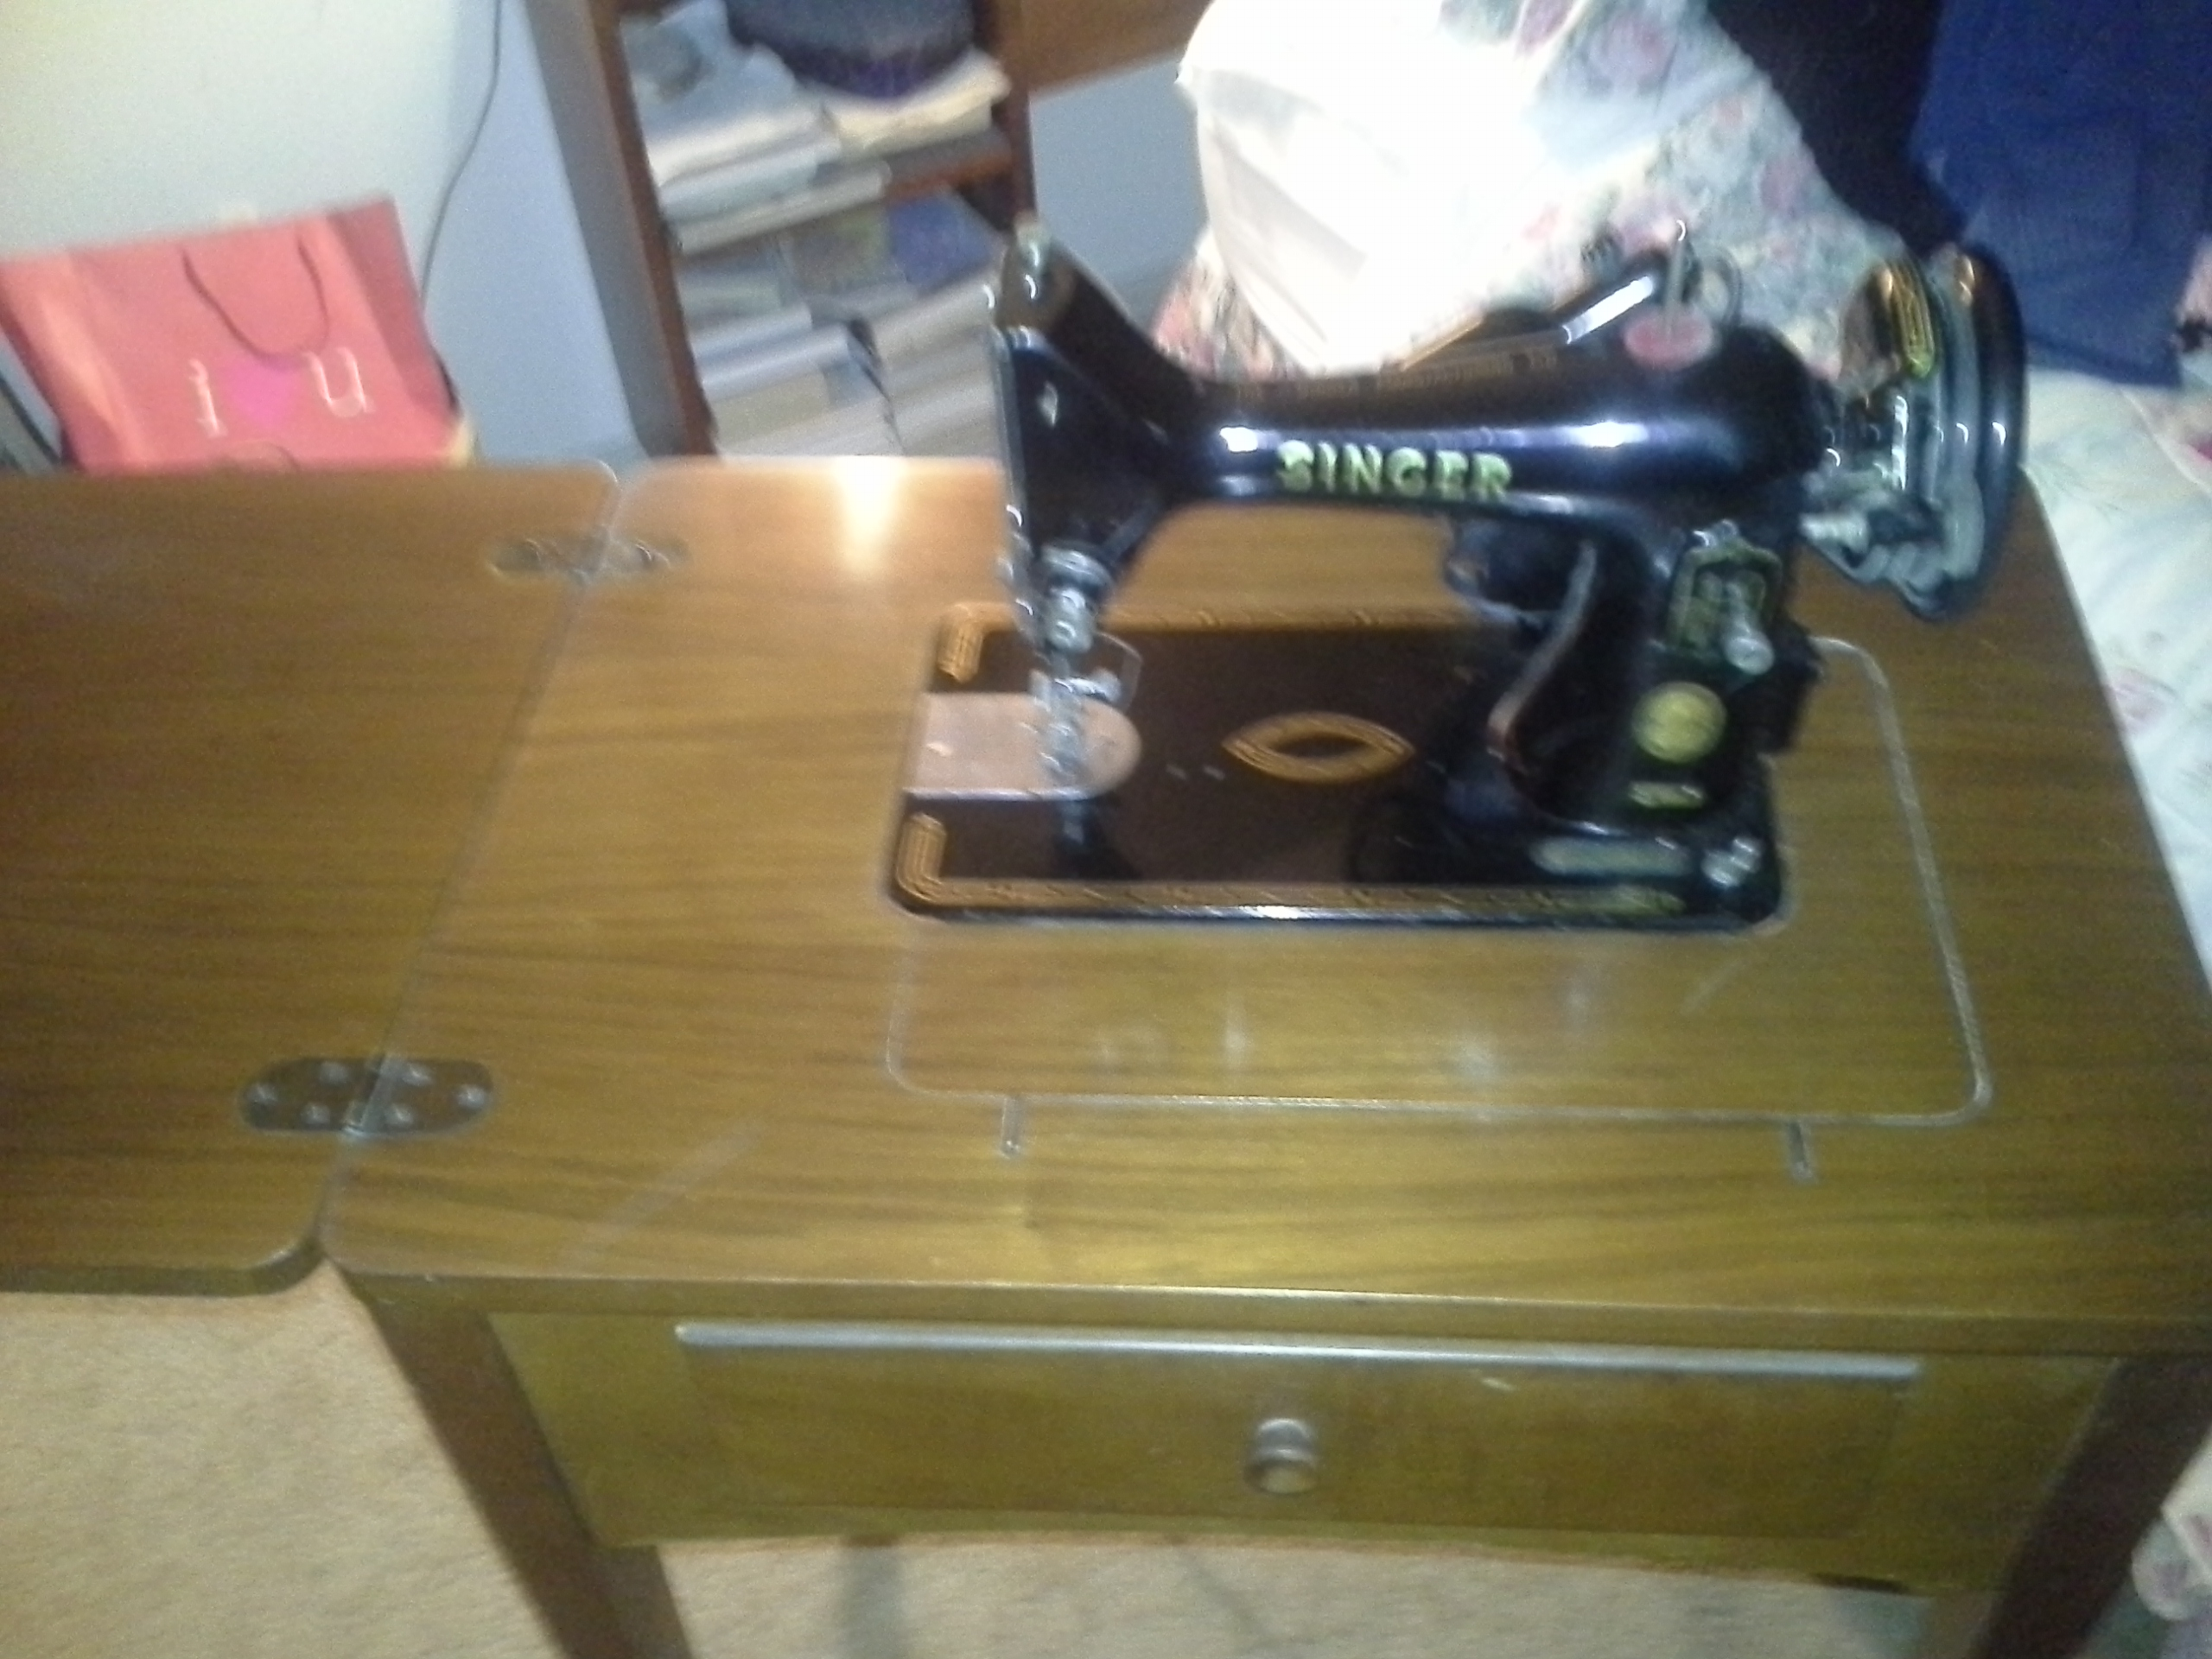 I Seek The Value Of A Singer Sewing Machine Cat Bz 15 8 Serial